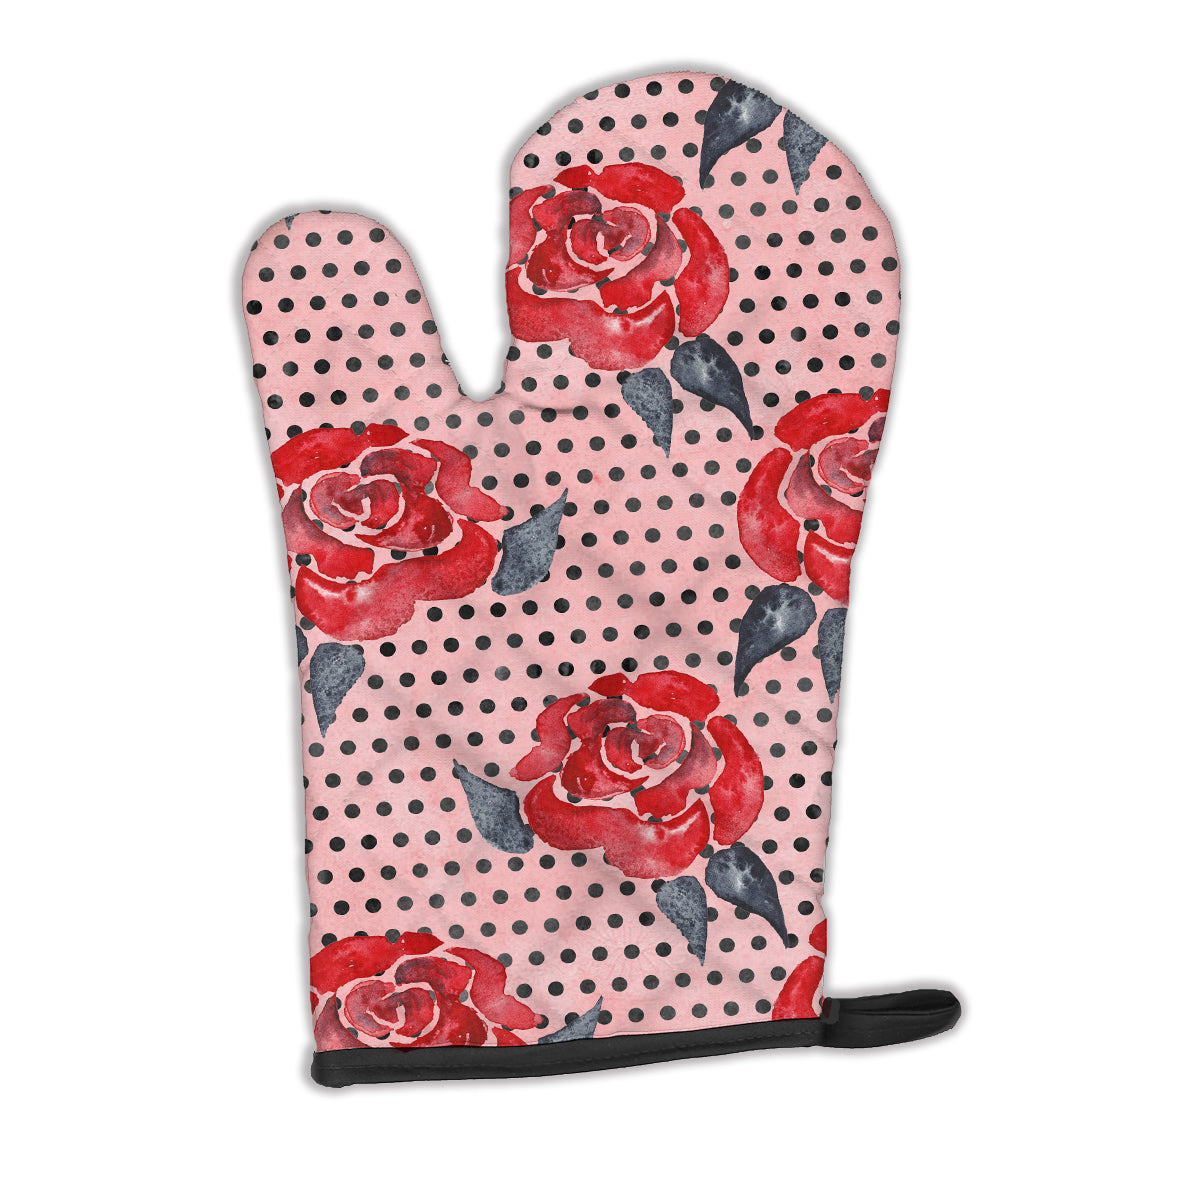 Watercolor Red Roses and Polkadots Oven Mitt BB7513OVMT by Caroline's Treasures